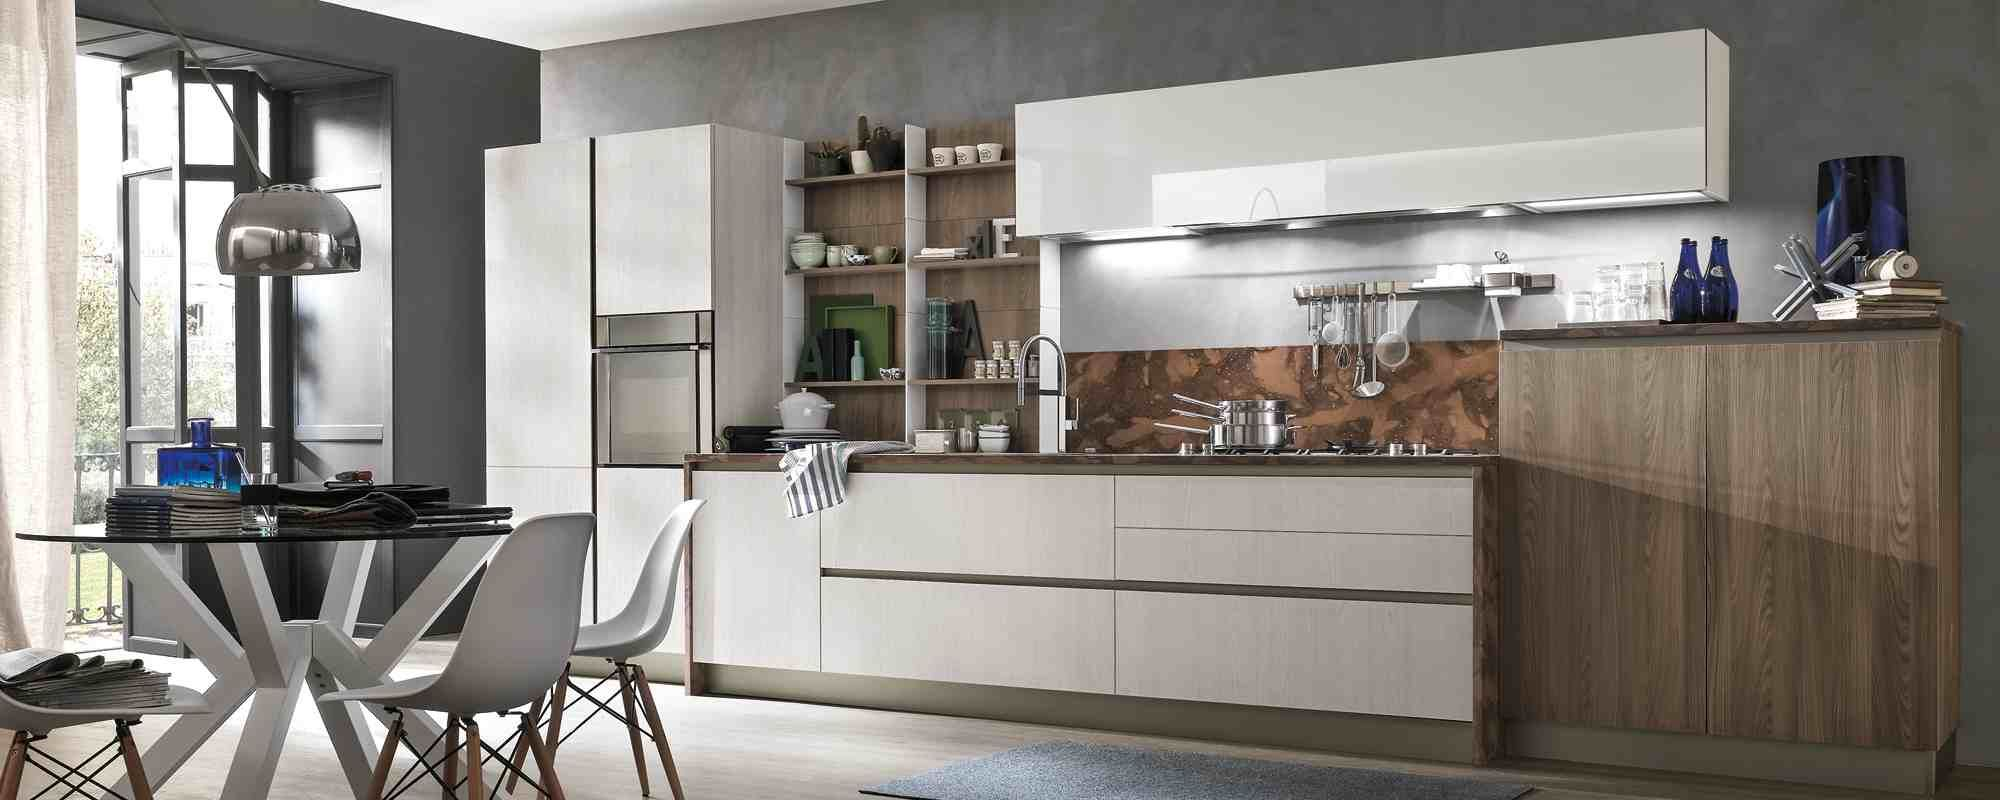 cucine moderne stosa - modello cucina infinity 04 | Kitchens | Home ...